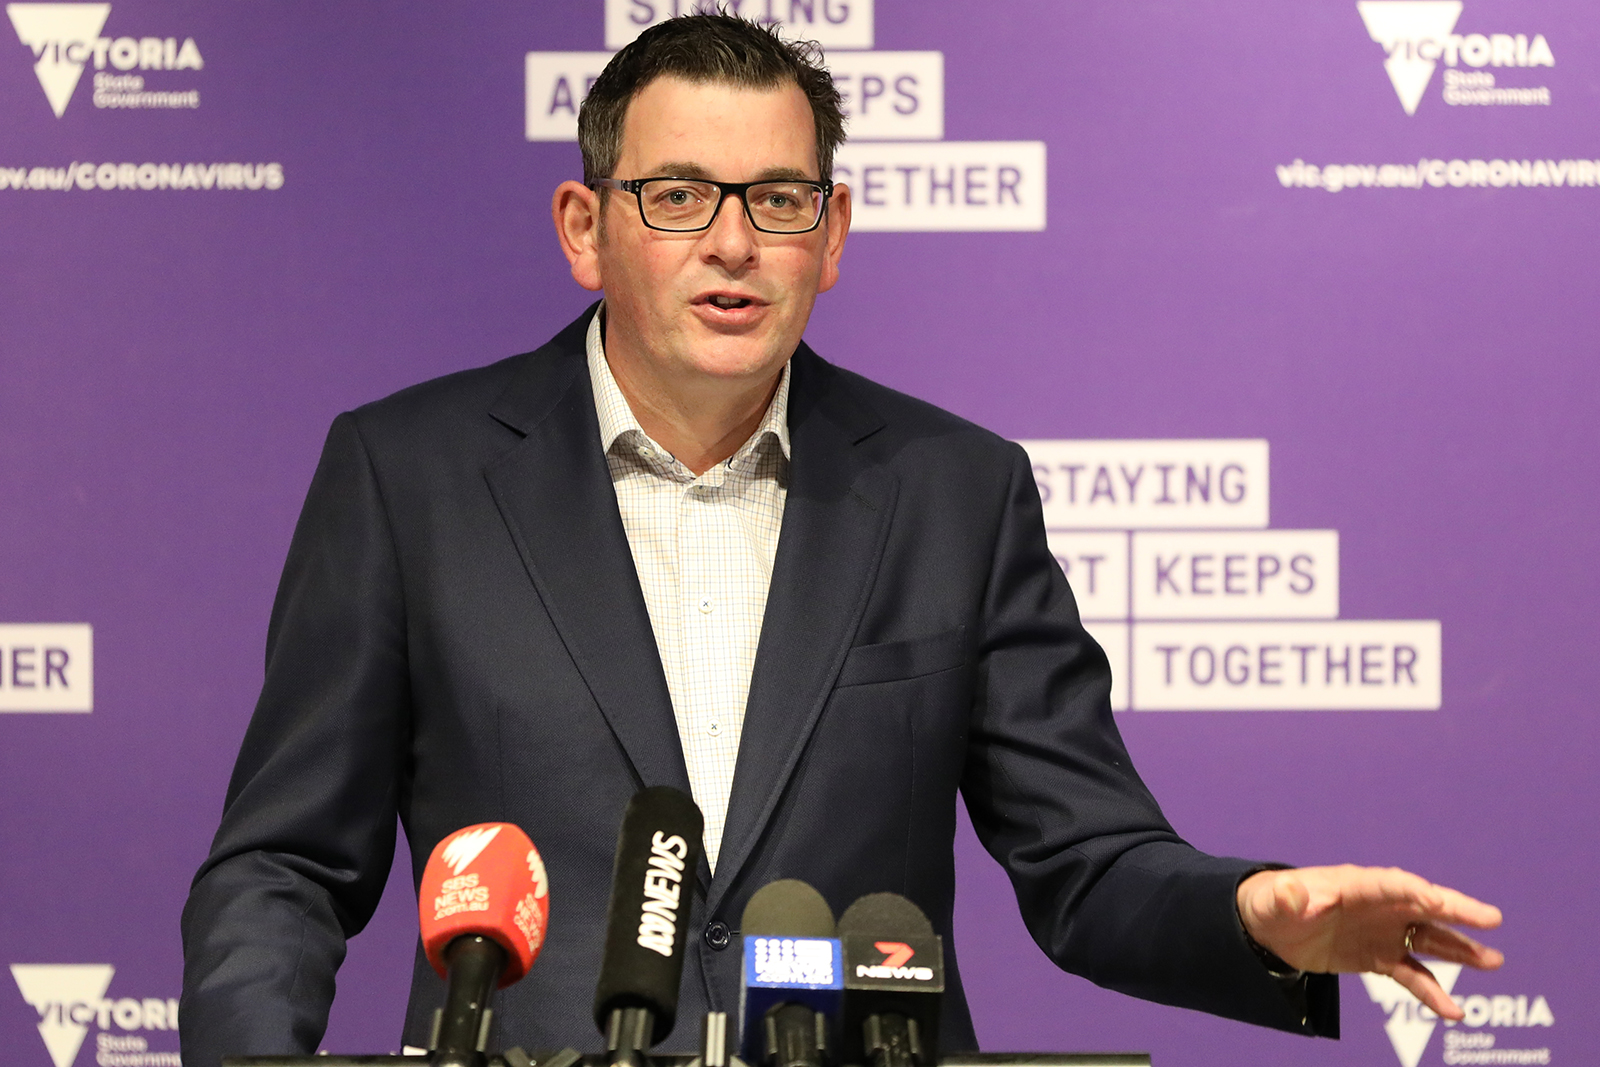 Premier of Victoria, Daniel Andrews, speaks during a press conference on June 28, in Melbourne, Australia.